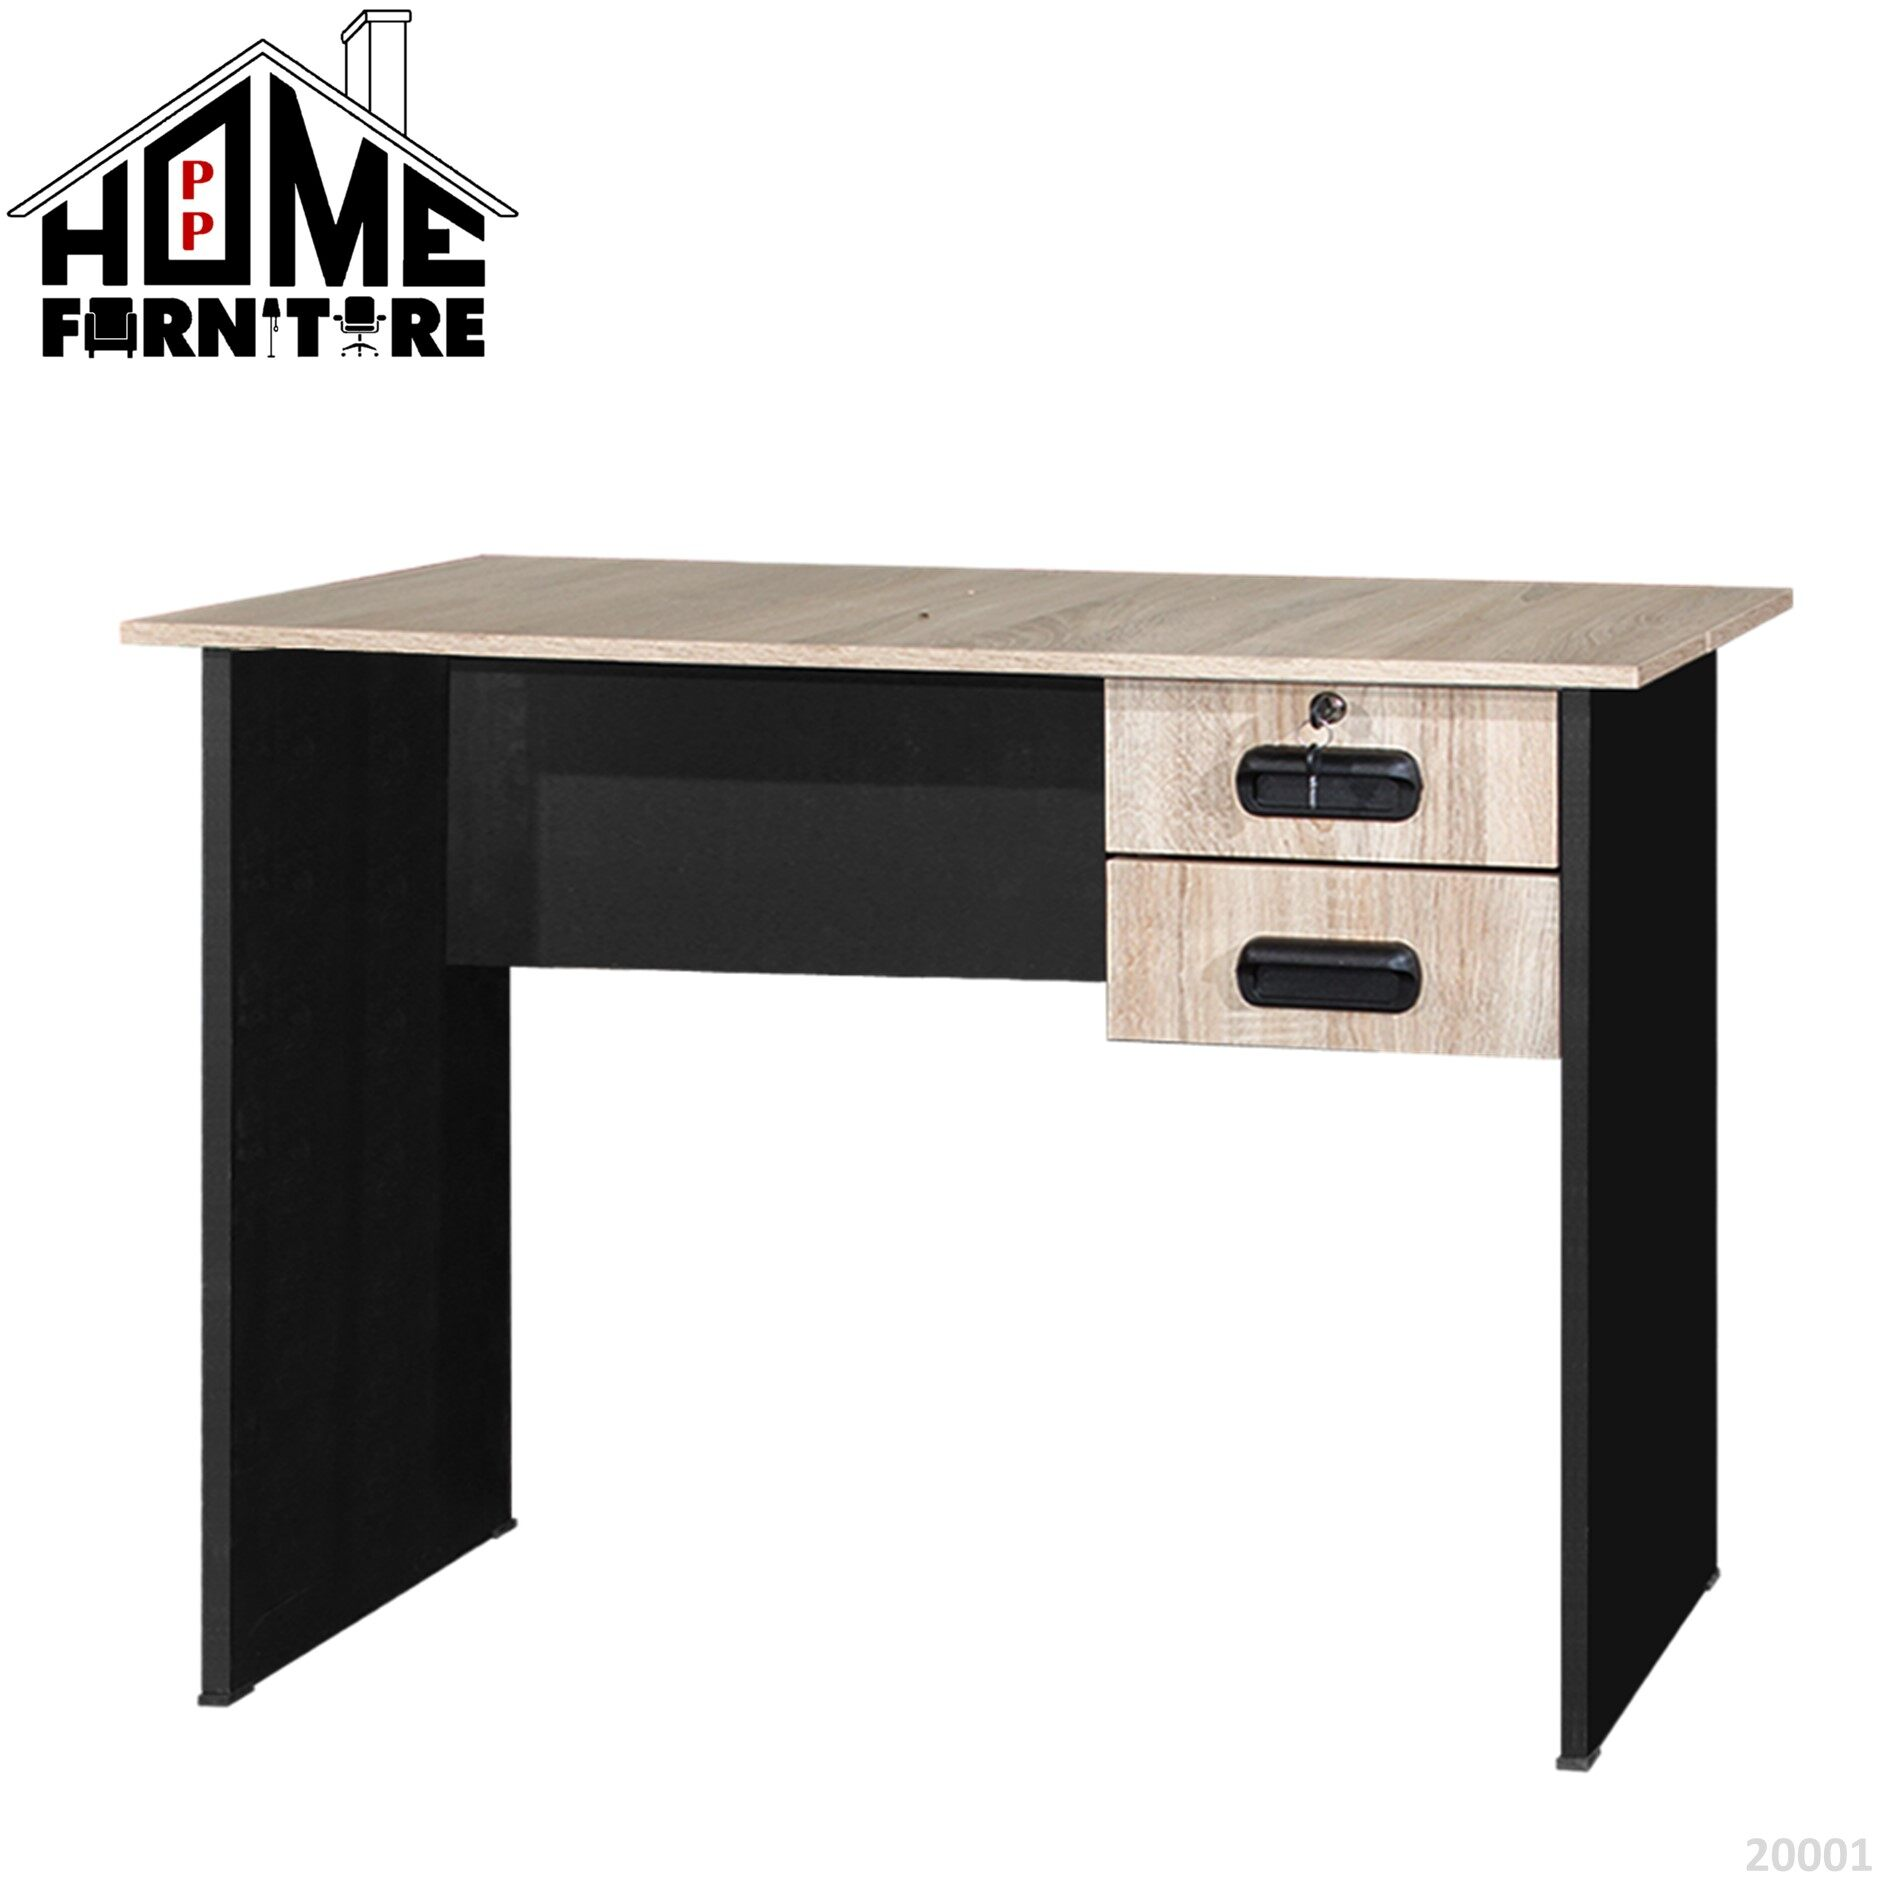 PP HOME Study Table with drawer/Writing table/Working table /PC table/ Student table/Home office table/Multipurpose table/Desk/Computer table/Destop/laptop/Meja belajar/Meja tulis/Meja kerja/komputer电脑桌/书桌/工作桌/读书桌/办公桌20002